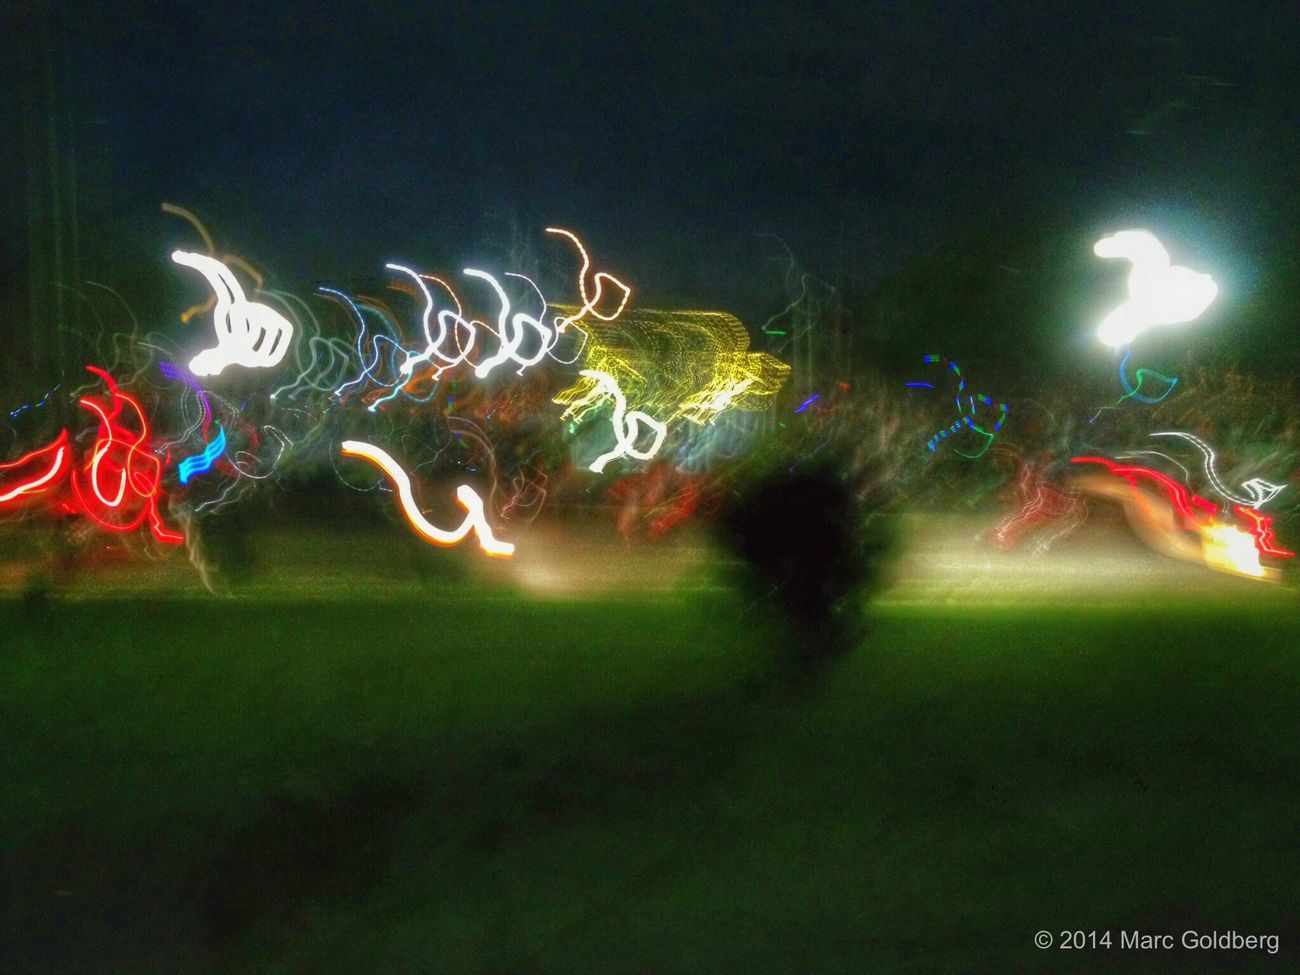 City of Sherrill Annual Concert and Fireworks Night, Reilly-Mumford Memorial Park Gazebo, Sherrill, New York, 7/26/14 Longexposure Keep It Blurry Light Neon